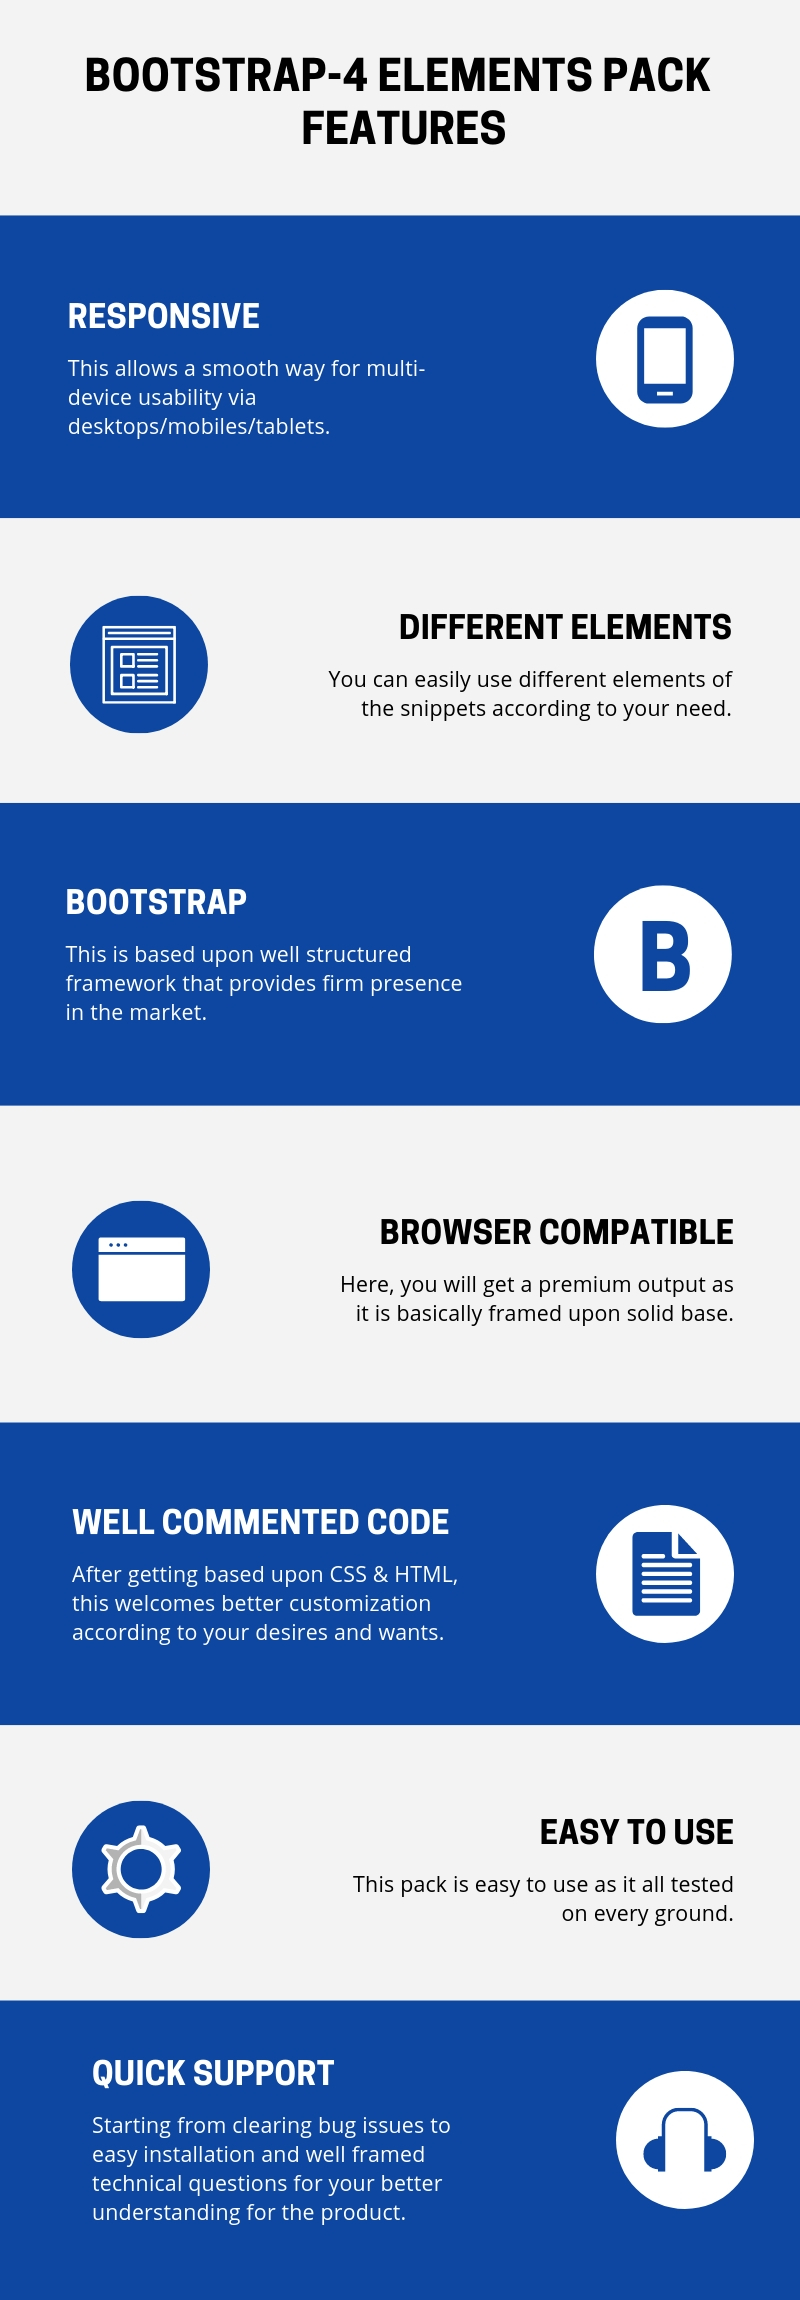 Bootstrap-4 Elements Pack Download